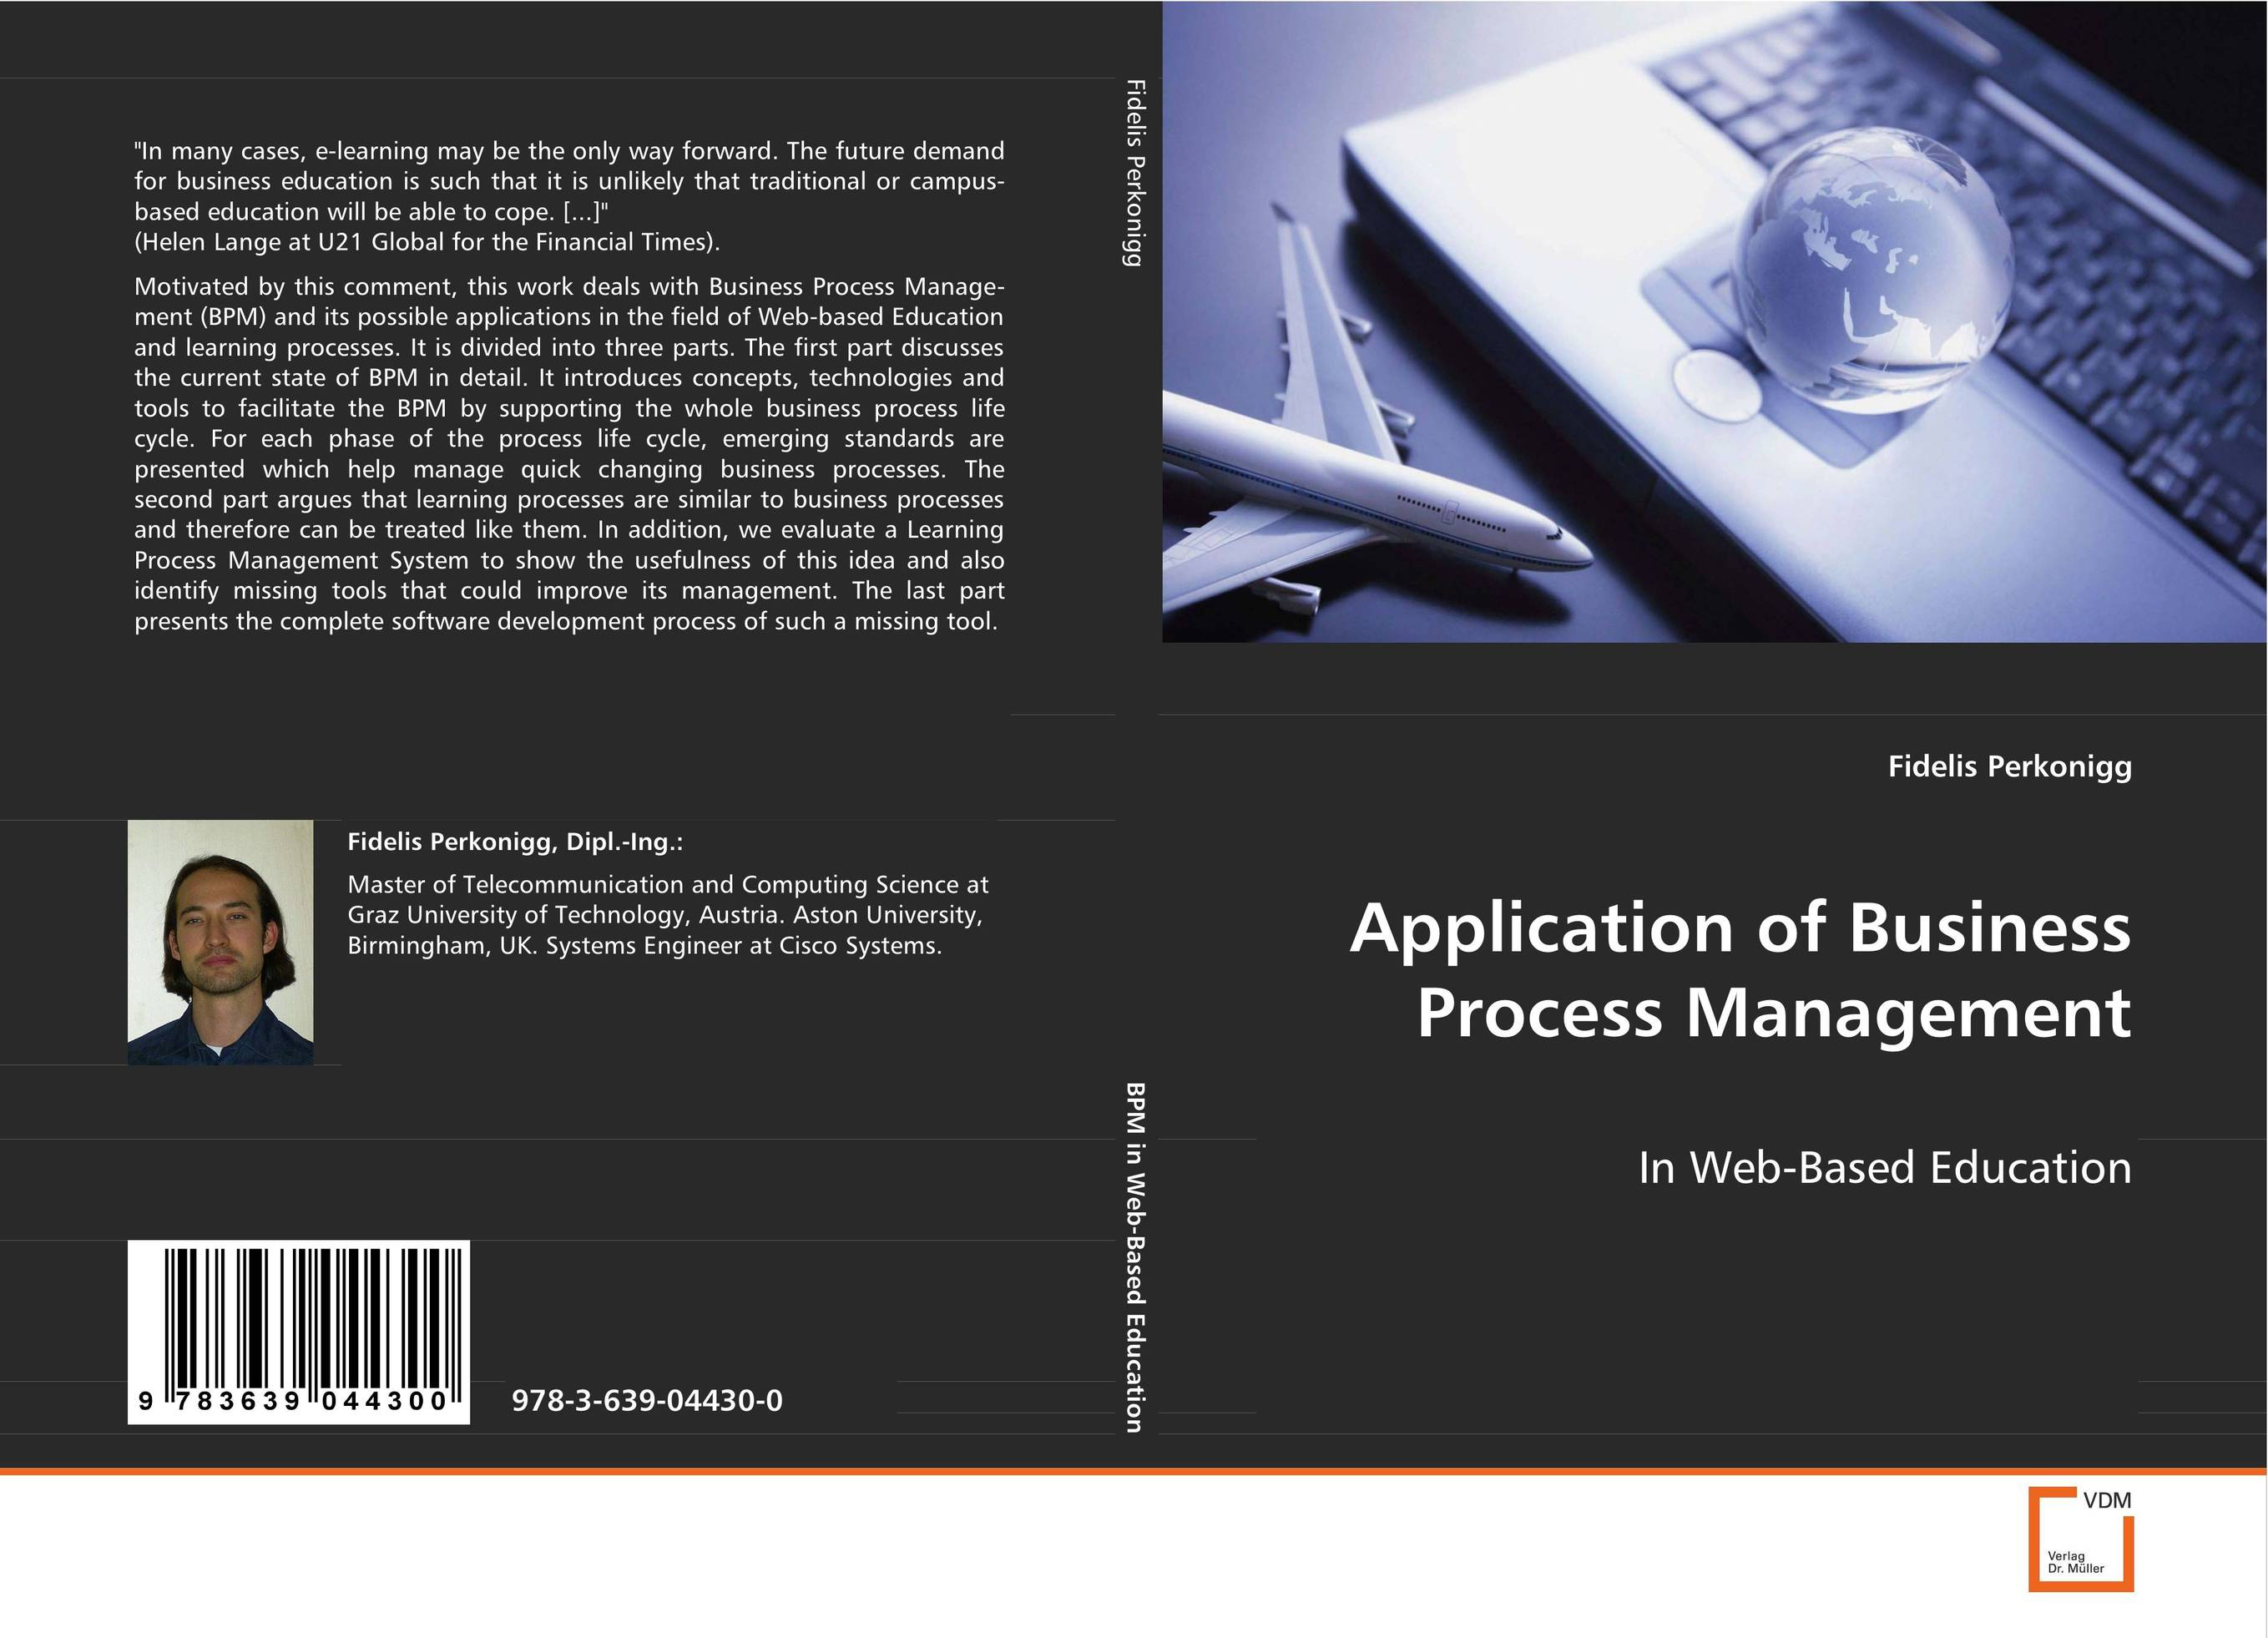 Application of Business Process Management overview of web based business